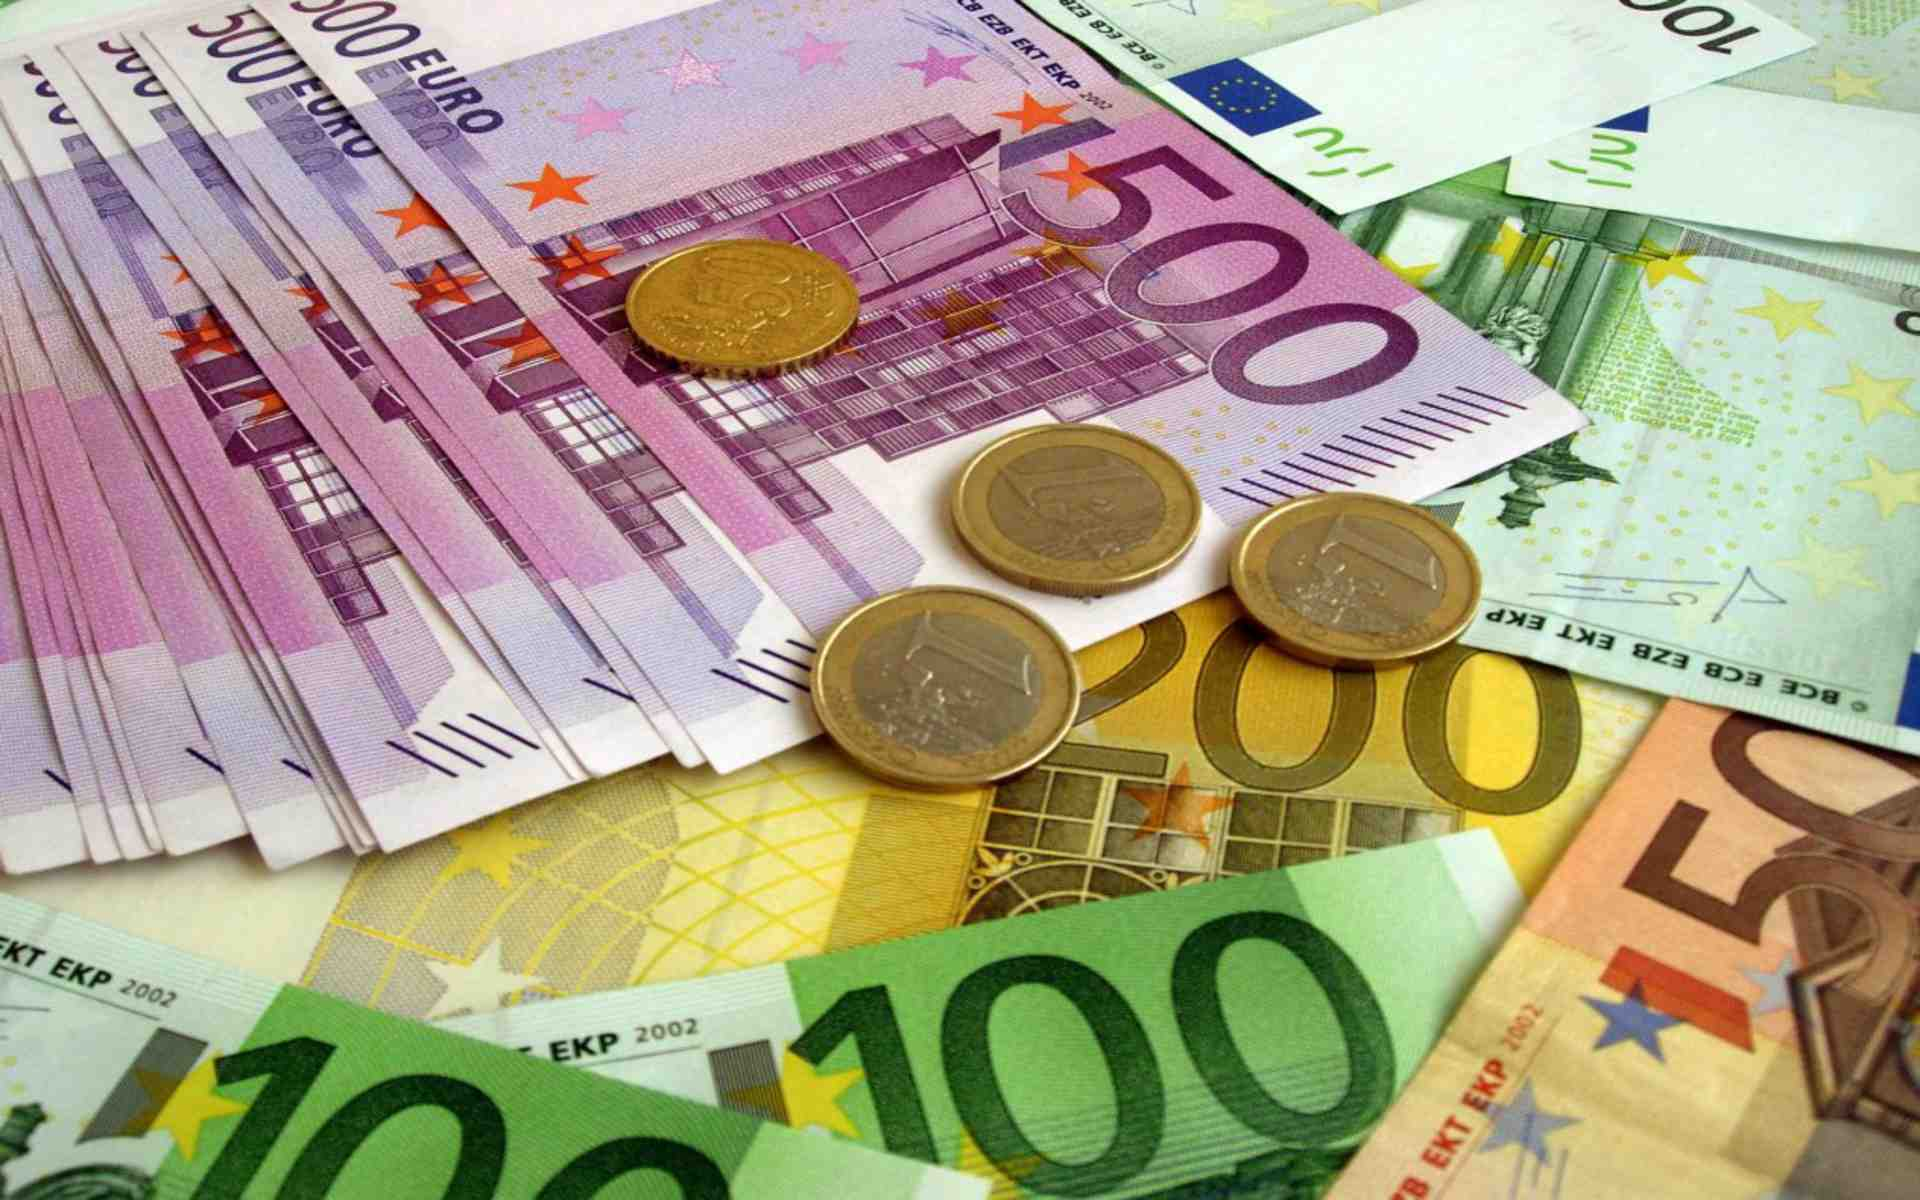 Albania's external debt increases, the government is responsible for most of it